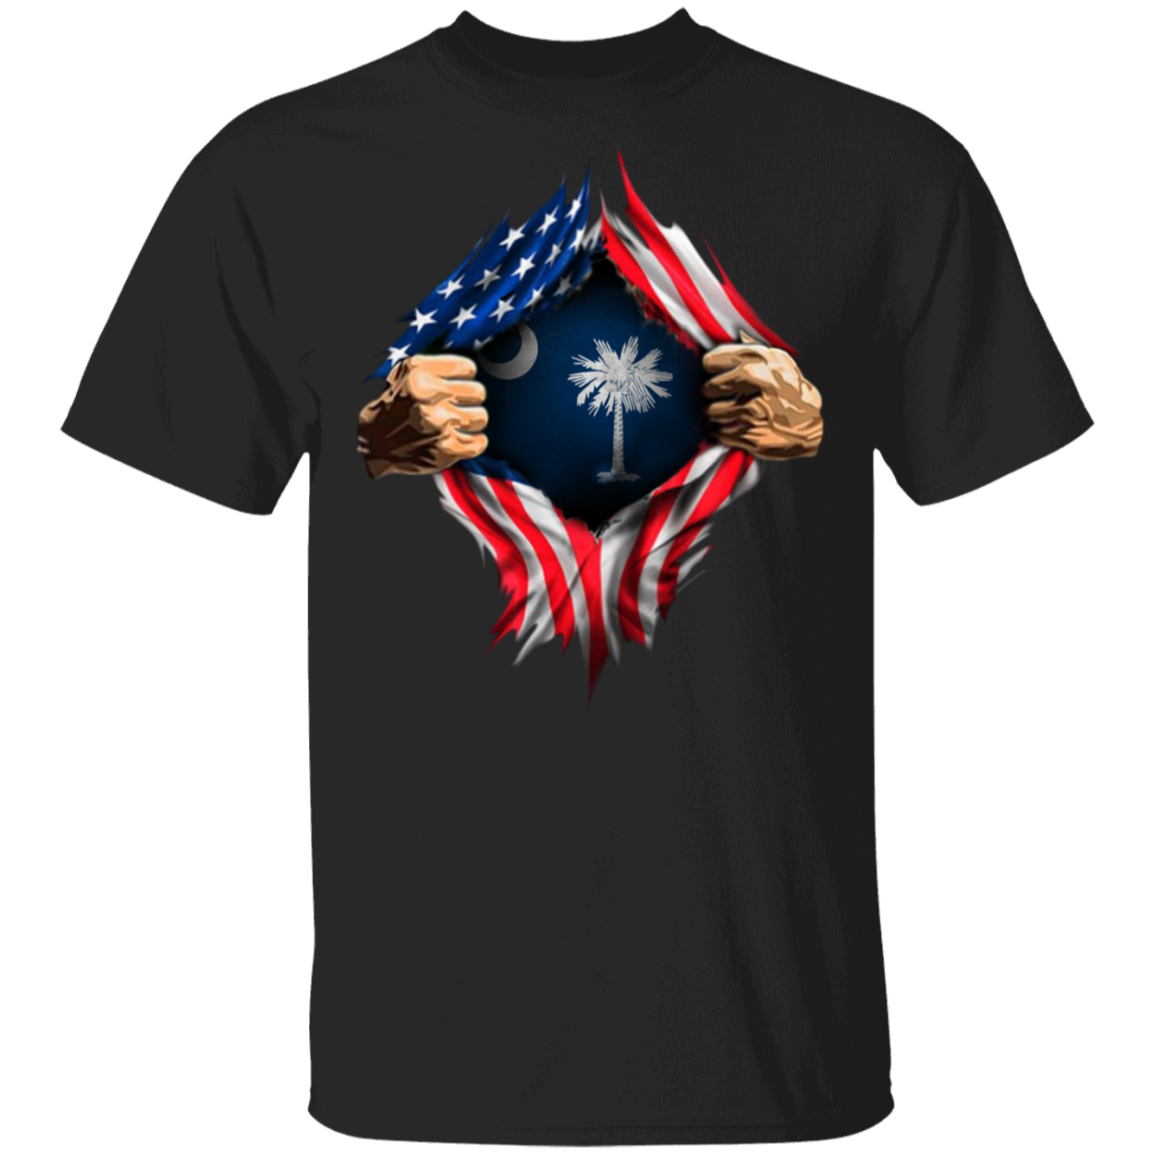 South Carolina Heartbeat Inside American Flag T-Shirt Patriotic Clothing For Men